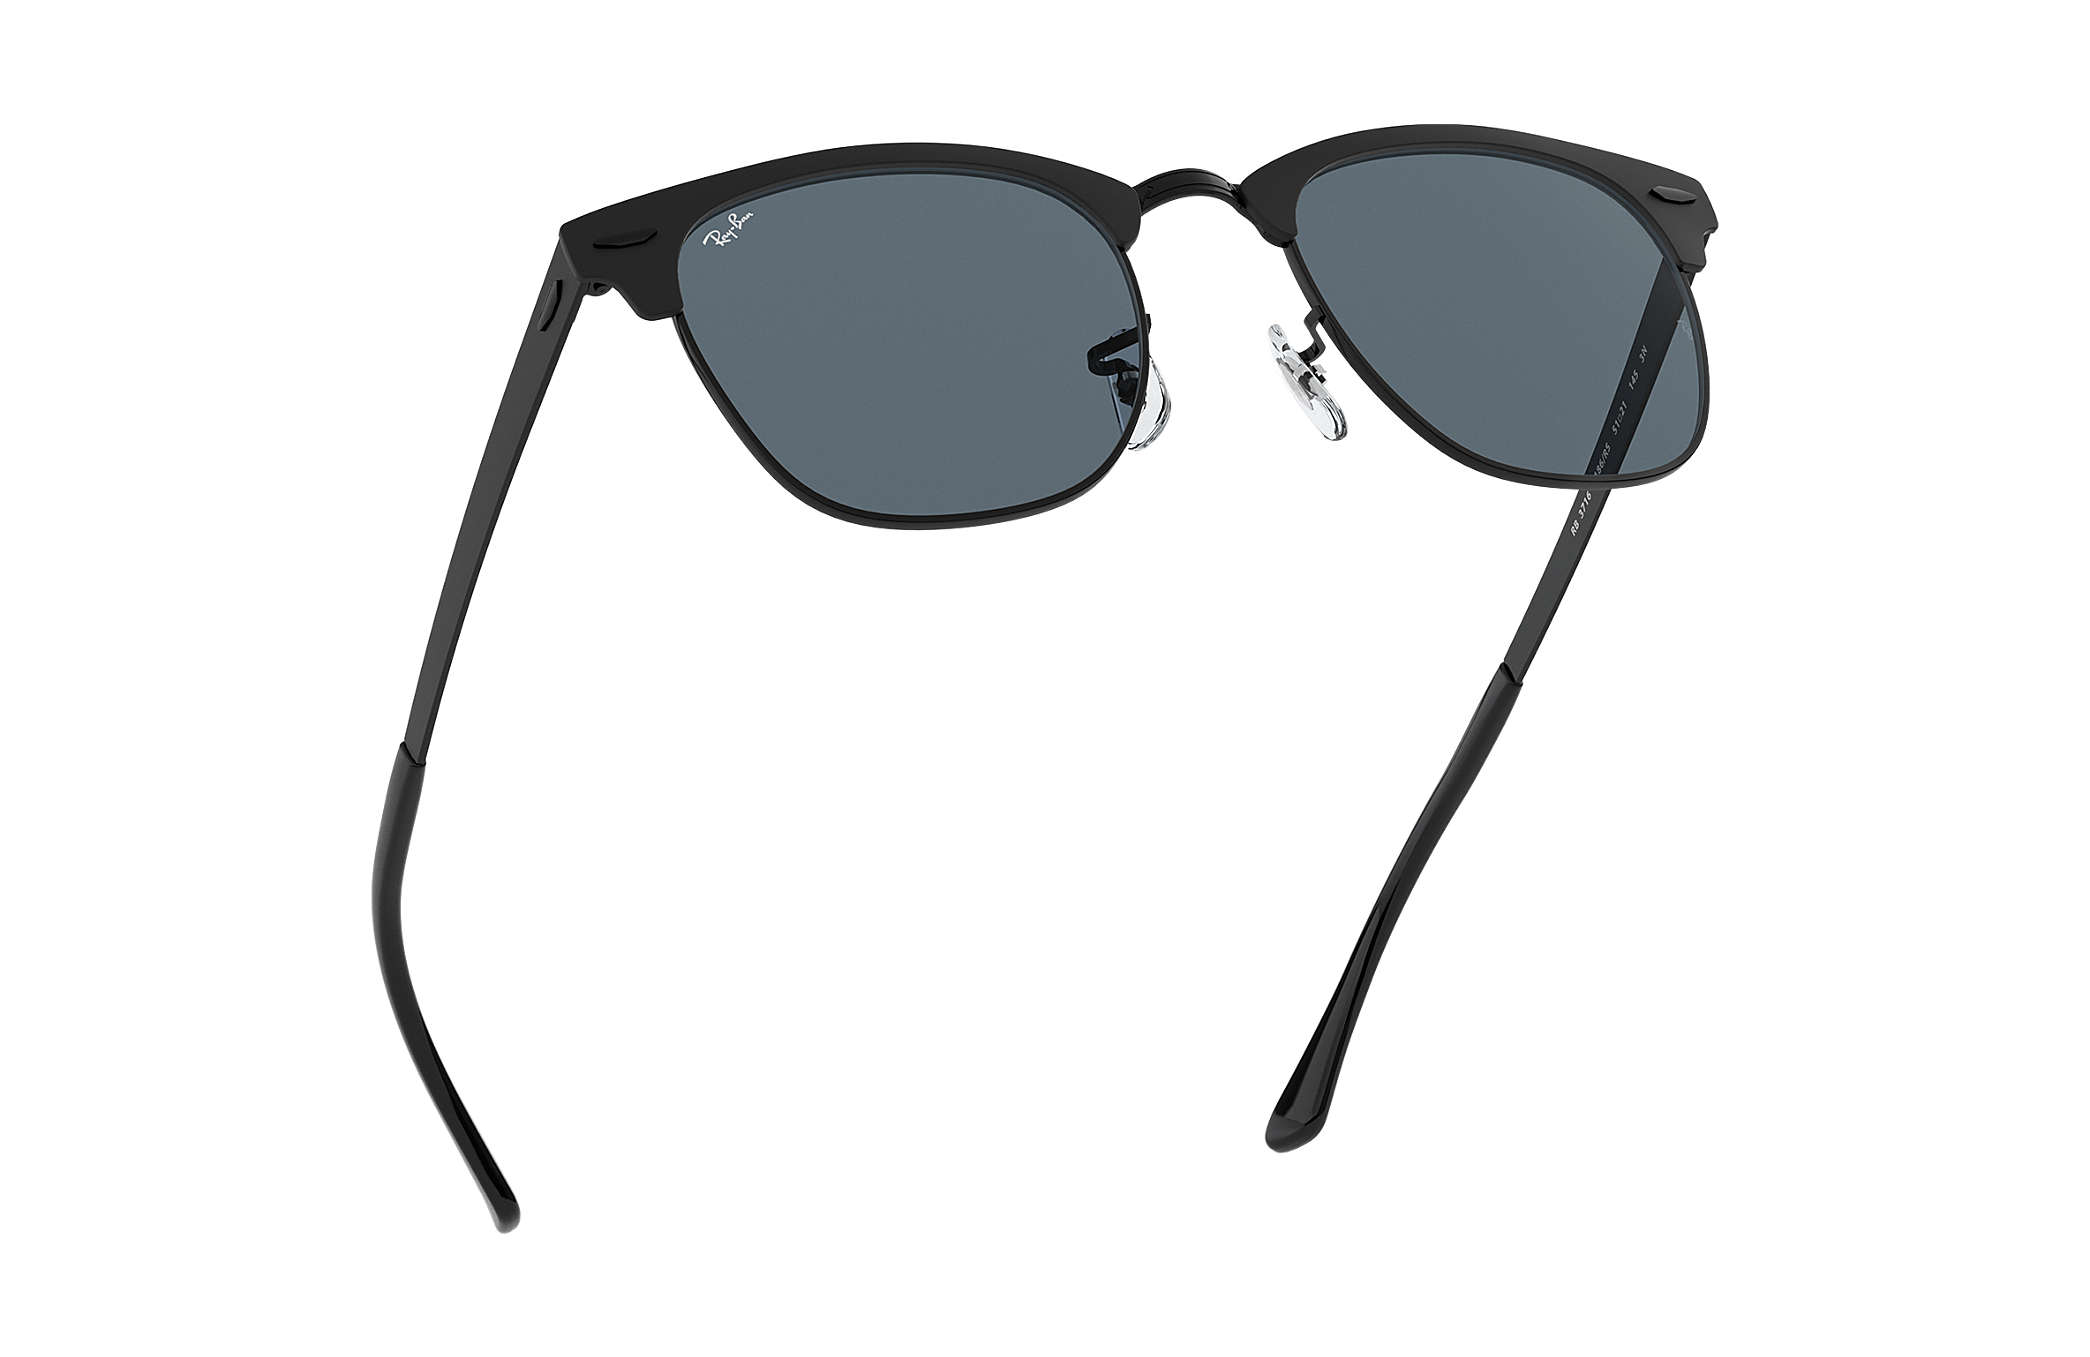 febde65a0efcb ... discount code for ray ban 0rb3716 clubmaster metal black sun 622d4 953d4